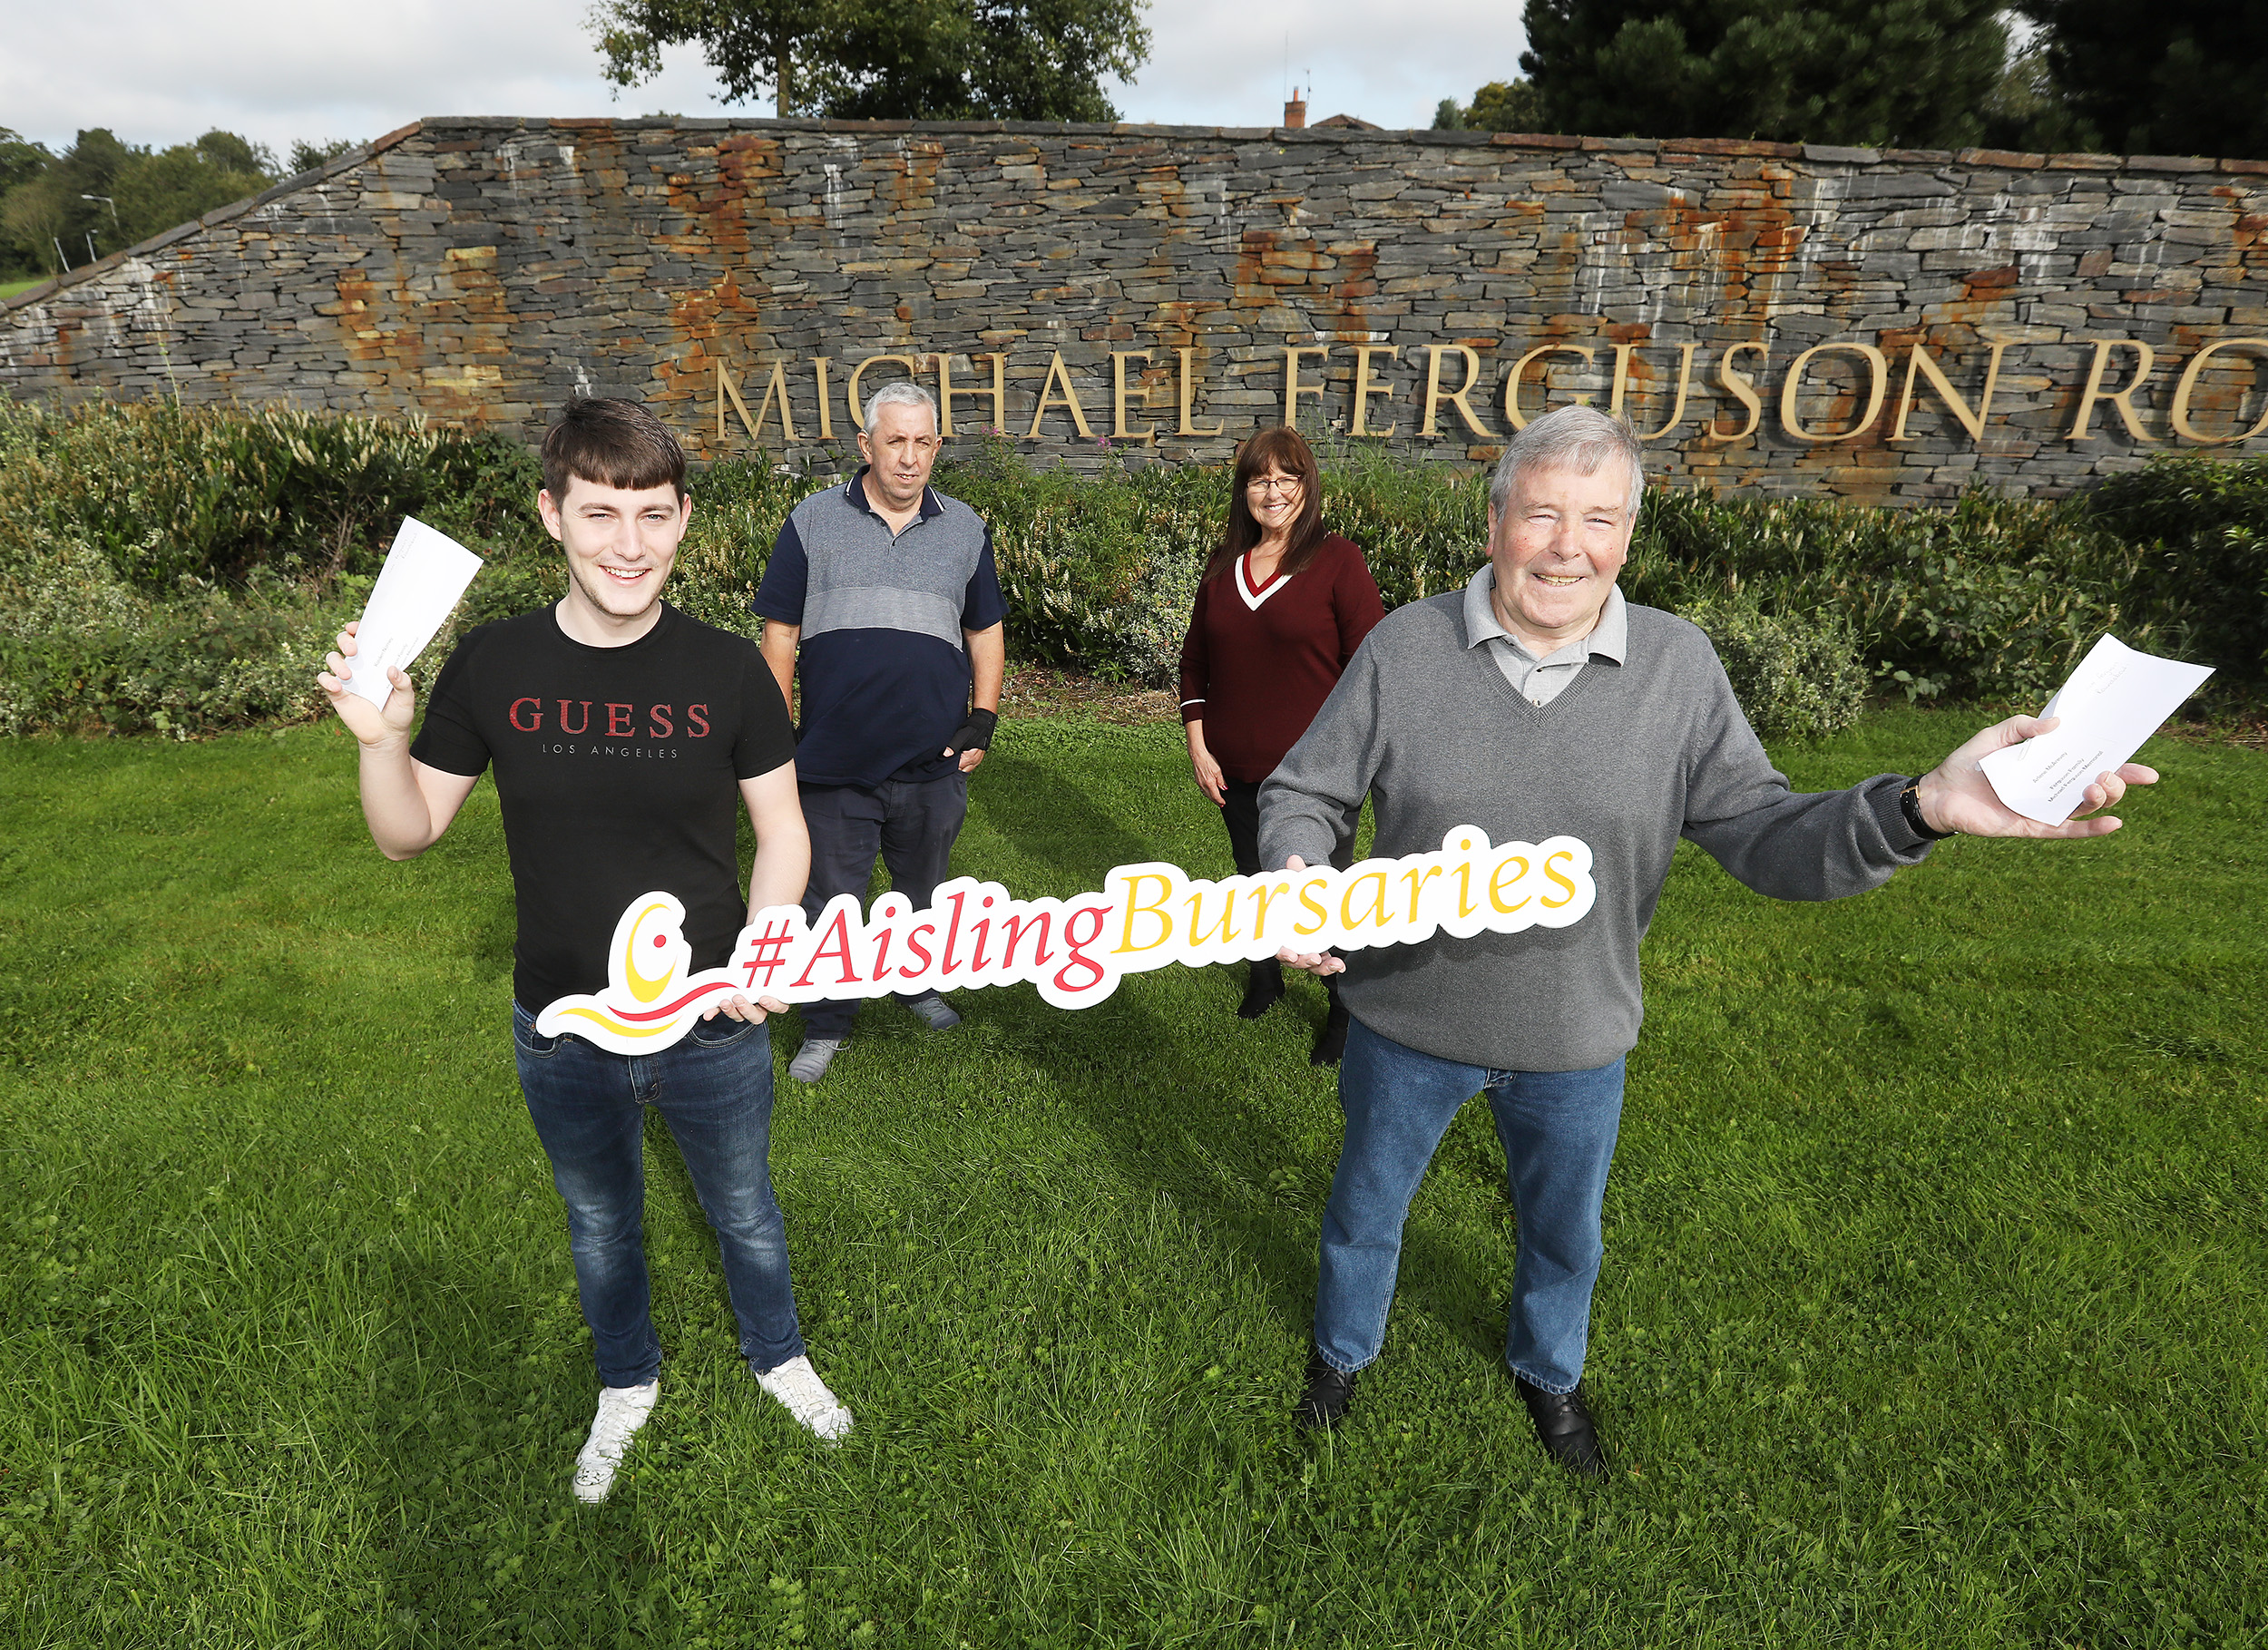 Marie Toman and Stephen Ferguson presenting the Bursaries to Kaiden Norney, who is beginning a degree in Computing Technology at Ulster University, Jordanstown and to Jim Crystal accepting on behalf of Arlene McAreavey, who is studying Social Policy with Criminology at UU Jordanstown. .